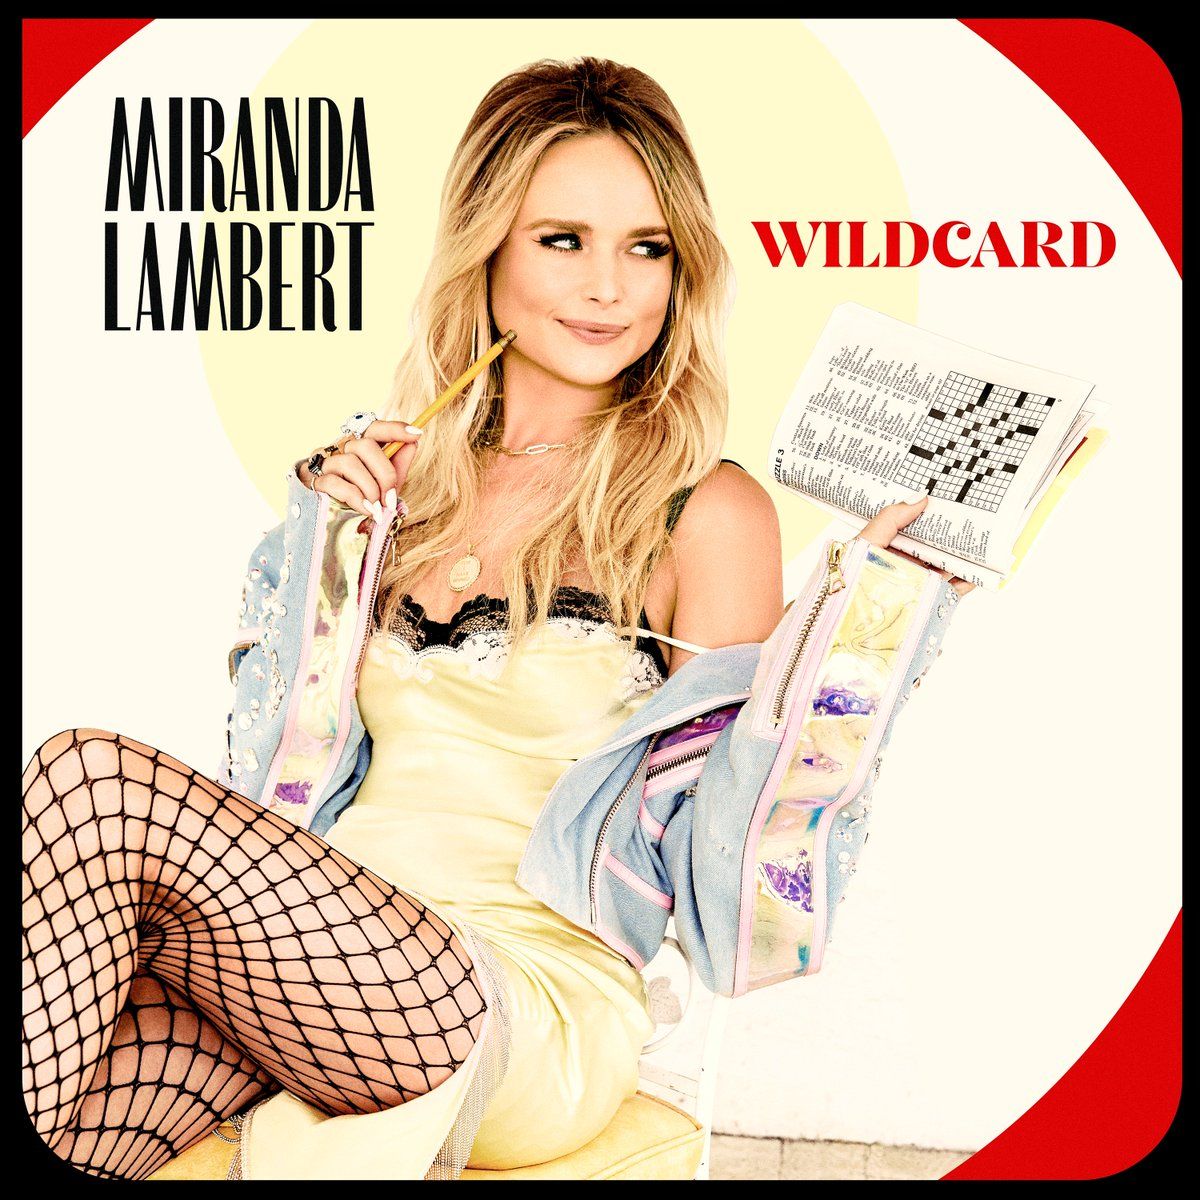 It's official. My 7th solo album #Wildcard is out now. #7 #countrymusic Listen here: http://smarturl.it/MLWildcard